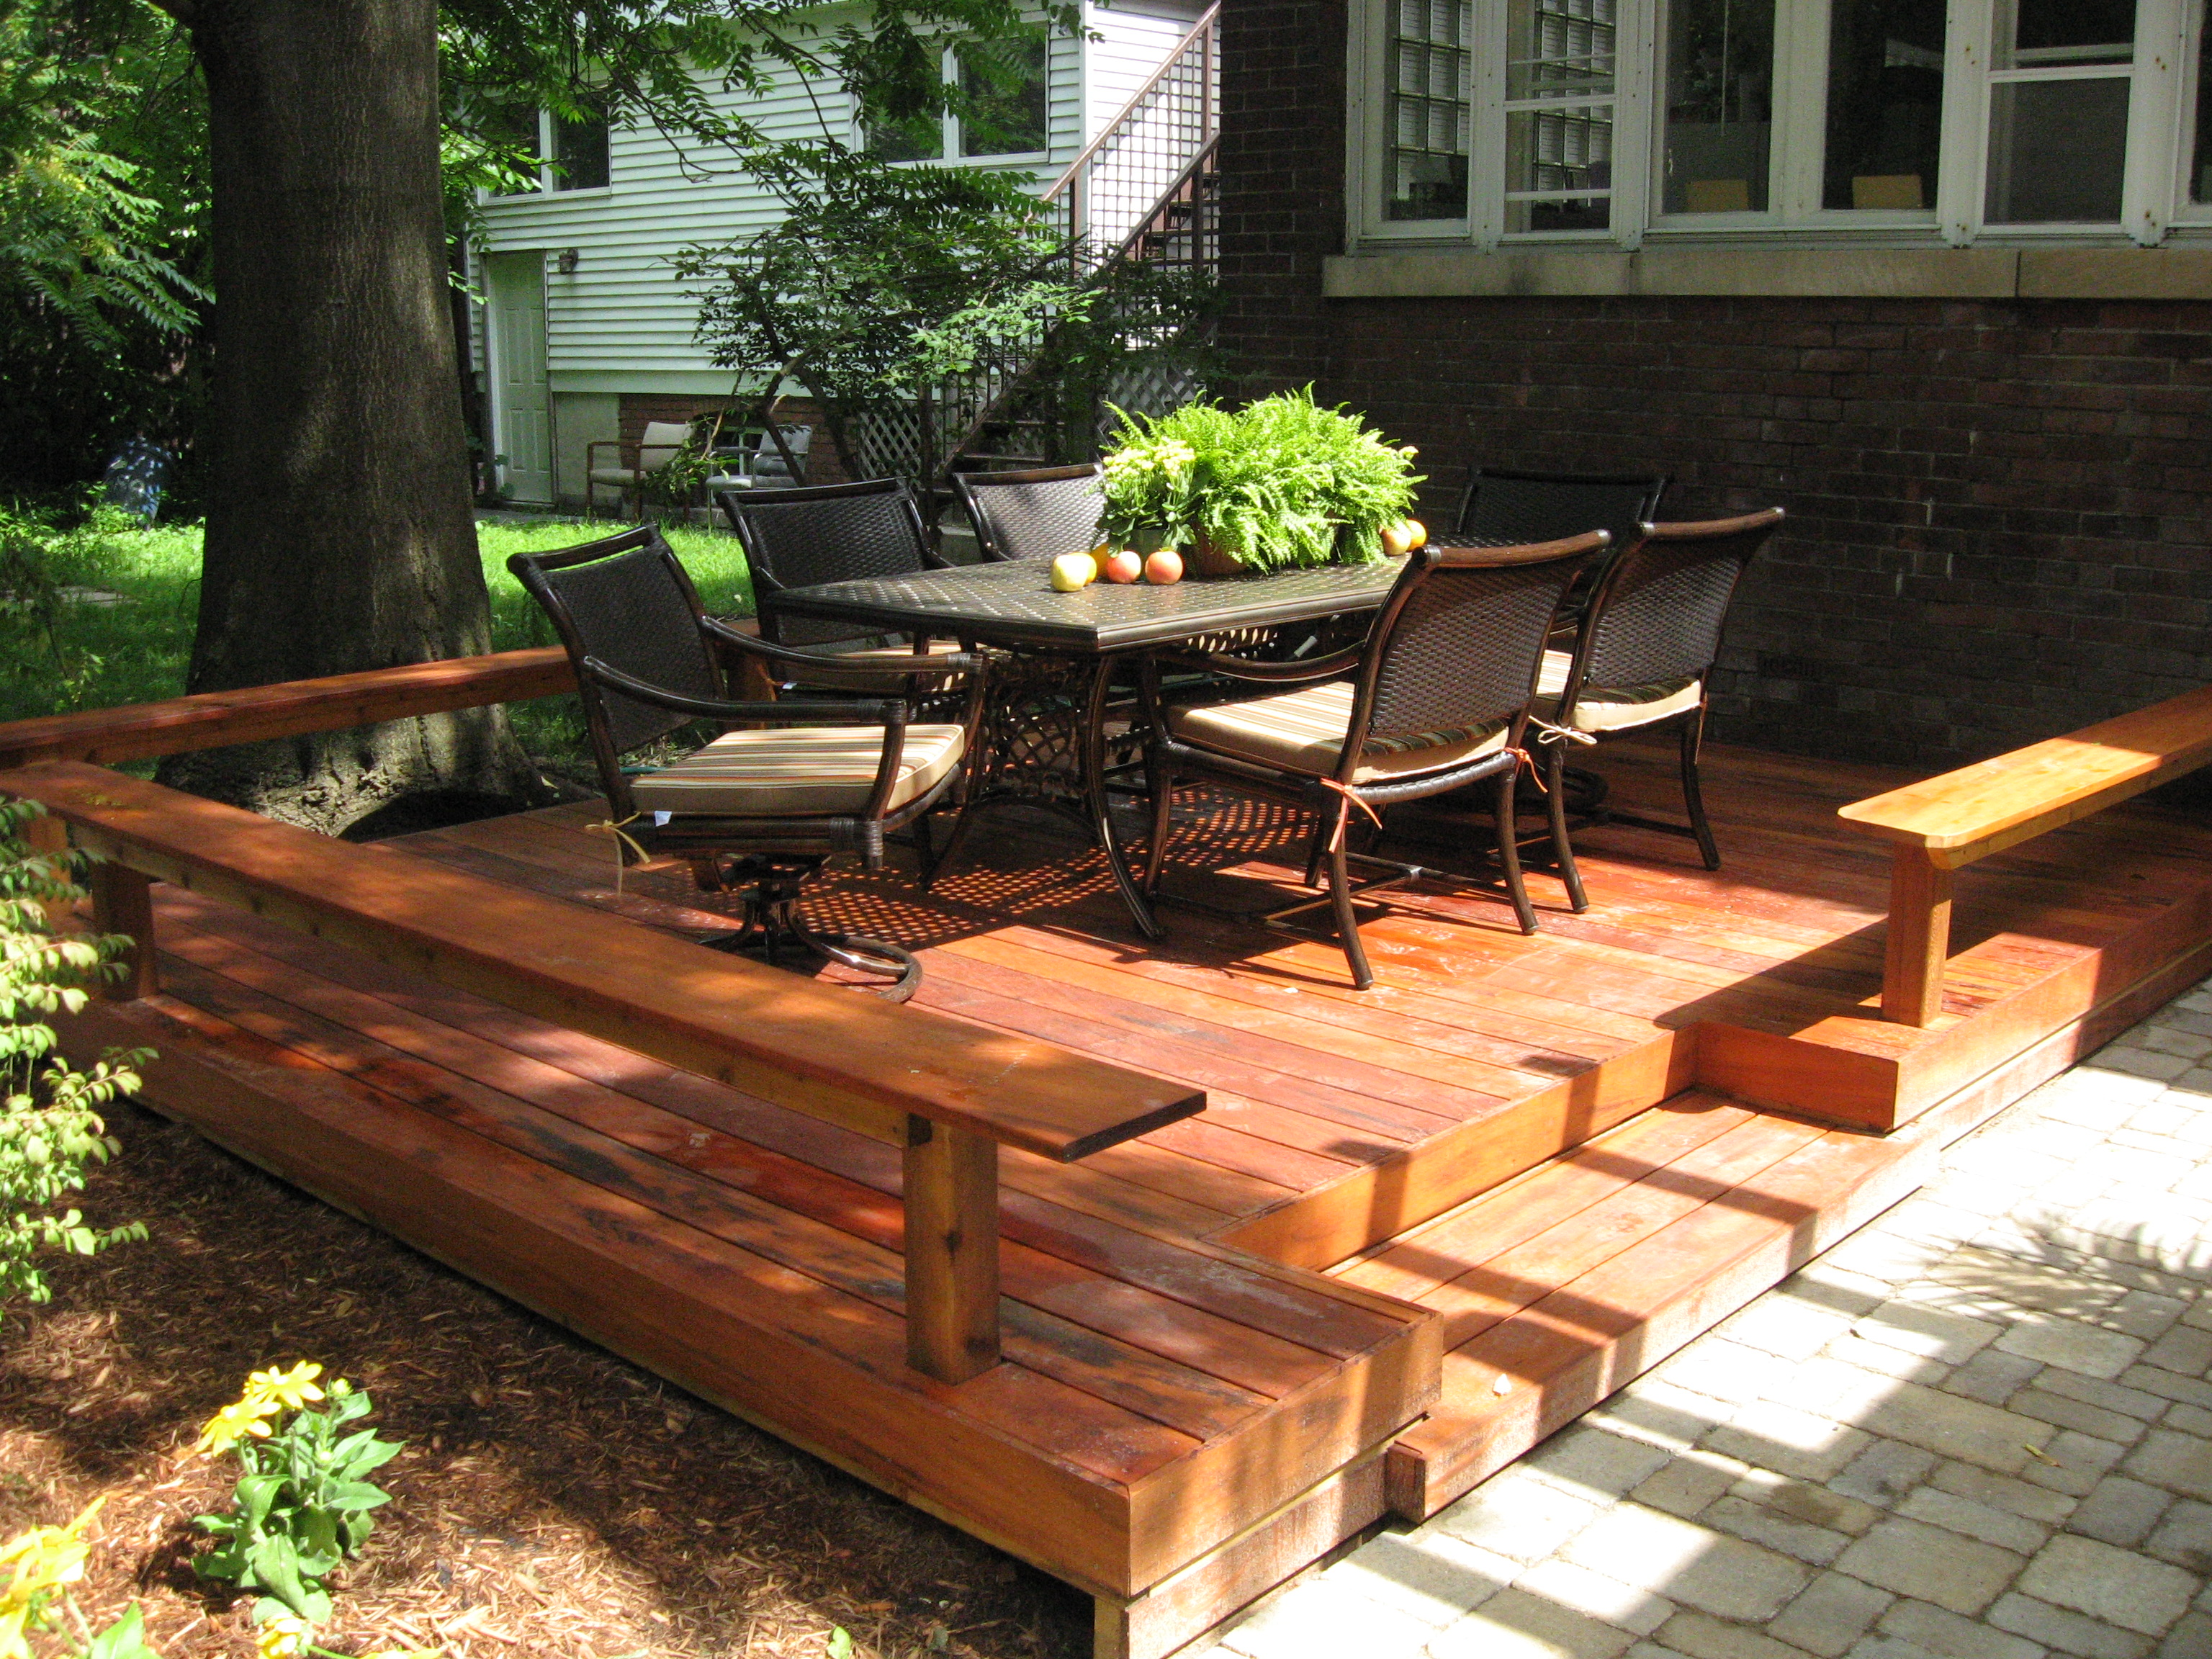 Deck Vs Patio What Is Best For You Huffpost